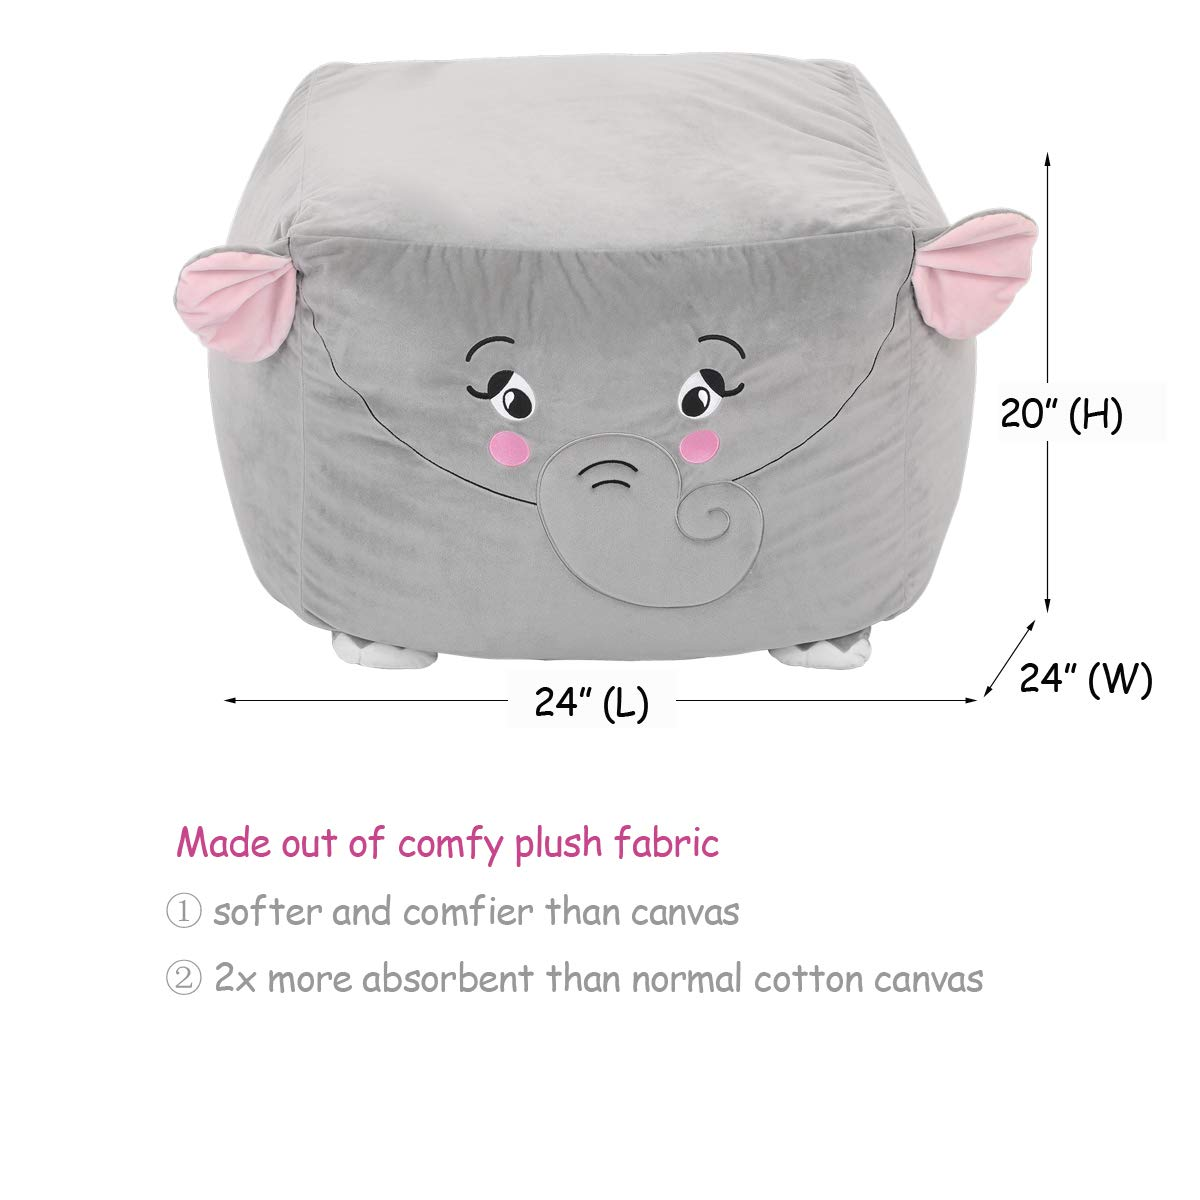 youngeyee Giant Elephant Stuffed Animal Storage Kids Bean Bag Chair Cover 24x24x20 Inches Velvet Toy Organization Storage Zipper Bags for Plush Toy Pillows Blankets Towels Clothes